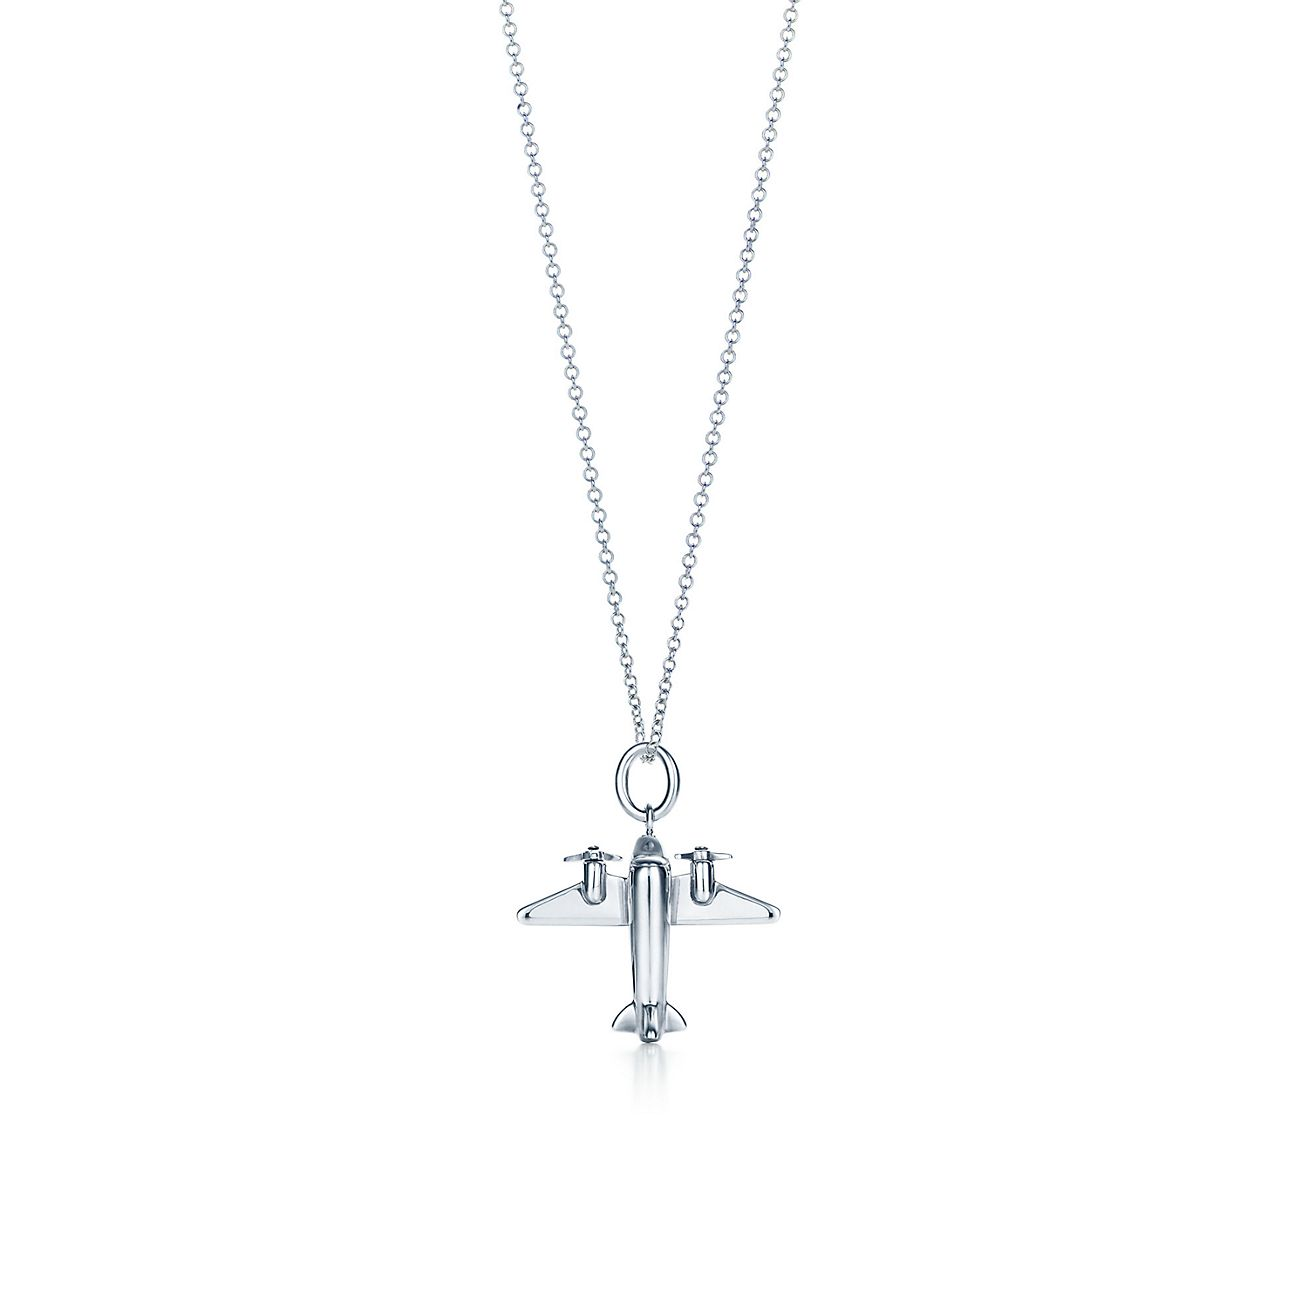 Airplane charm in sterling silver on a chain tiffany co airplane charm pendant aloadofball Choice Image